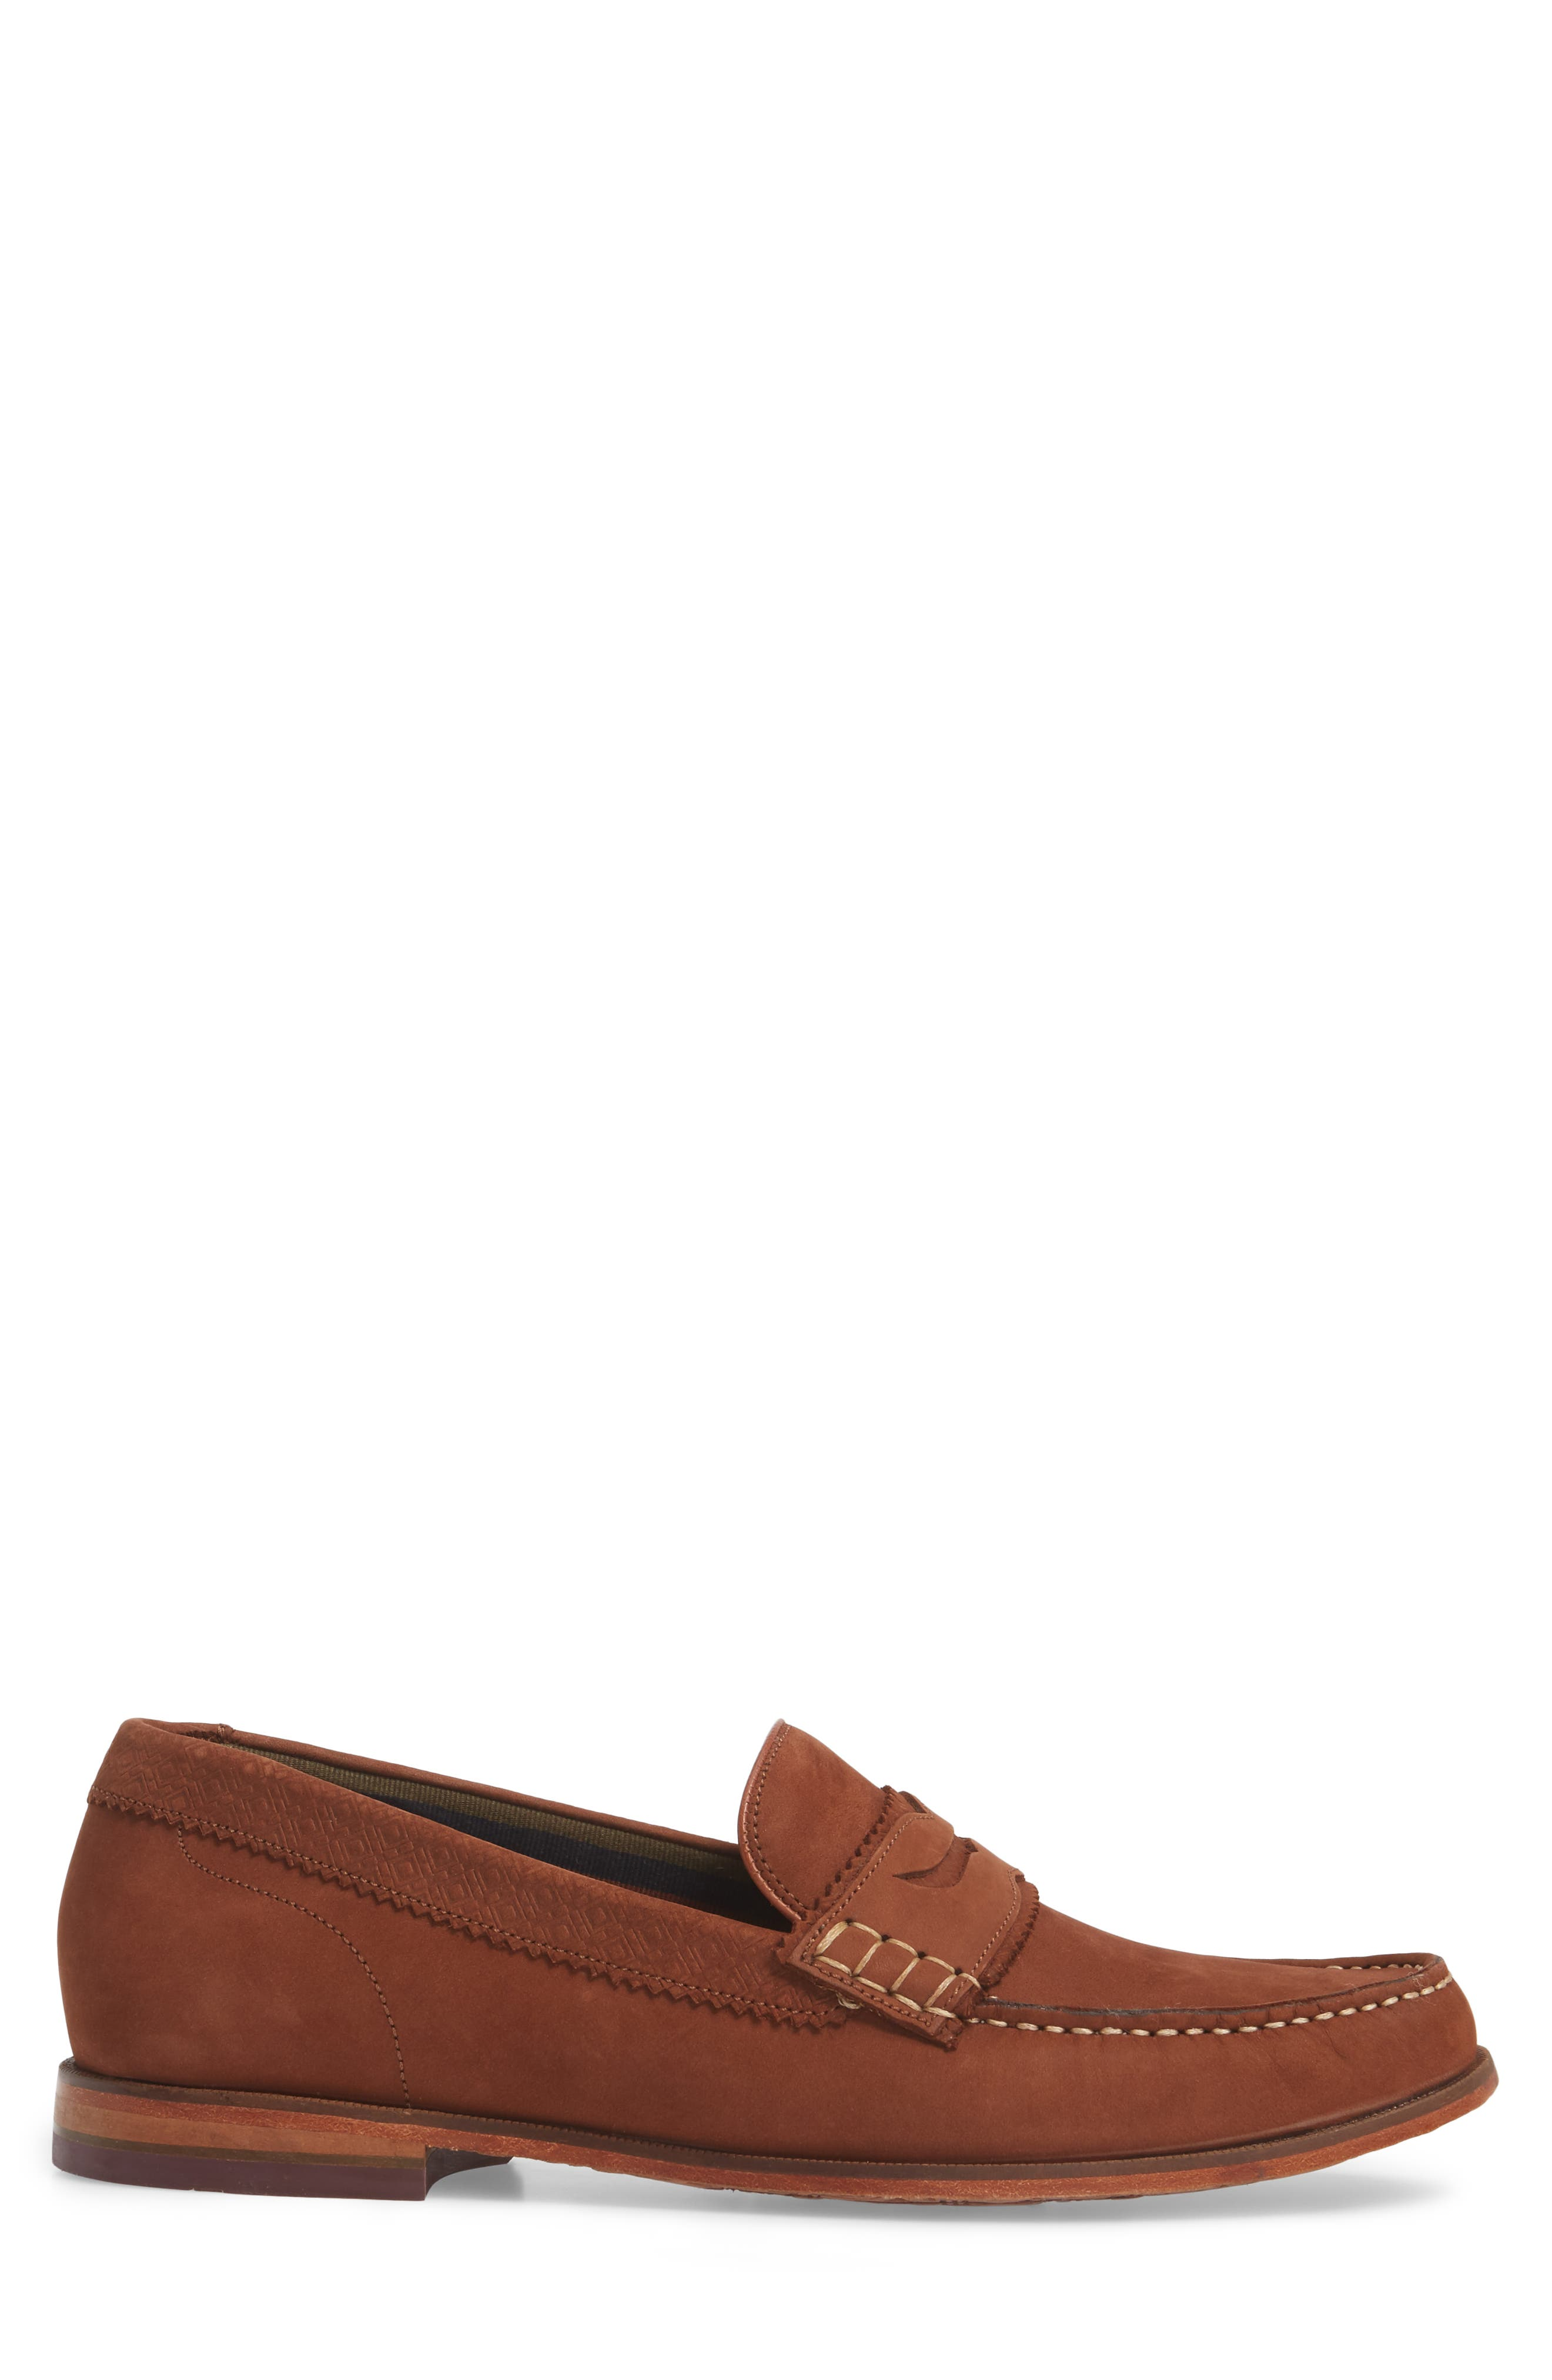 Miicke 5 Penny Loafer,                             Alternate thumbnail 3, color,                             209